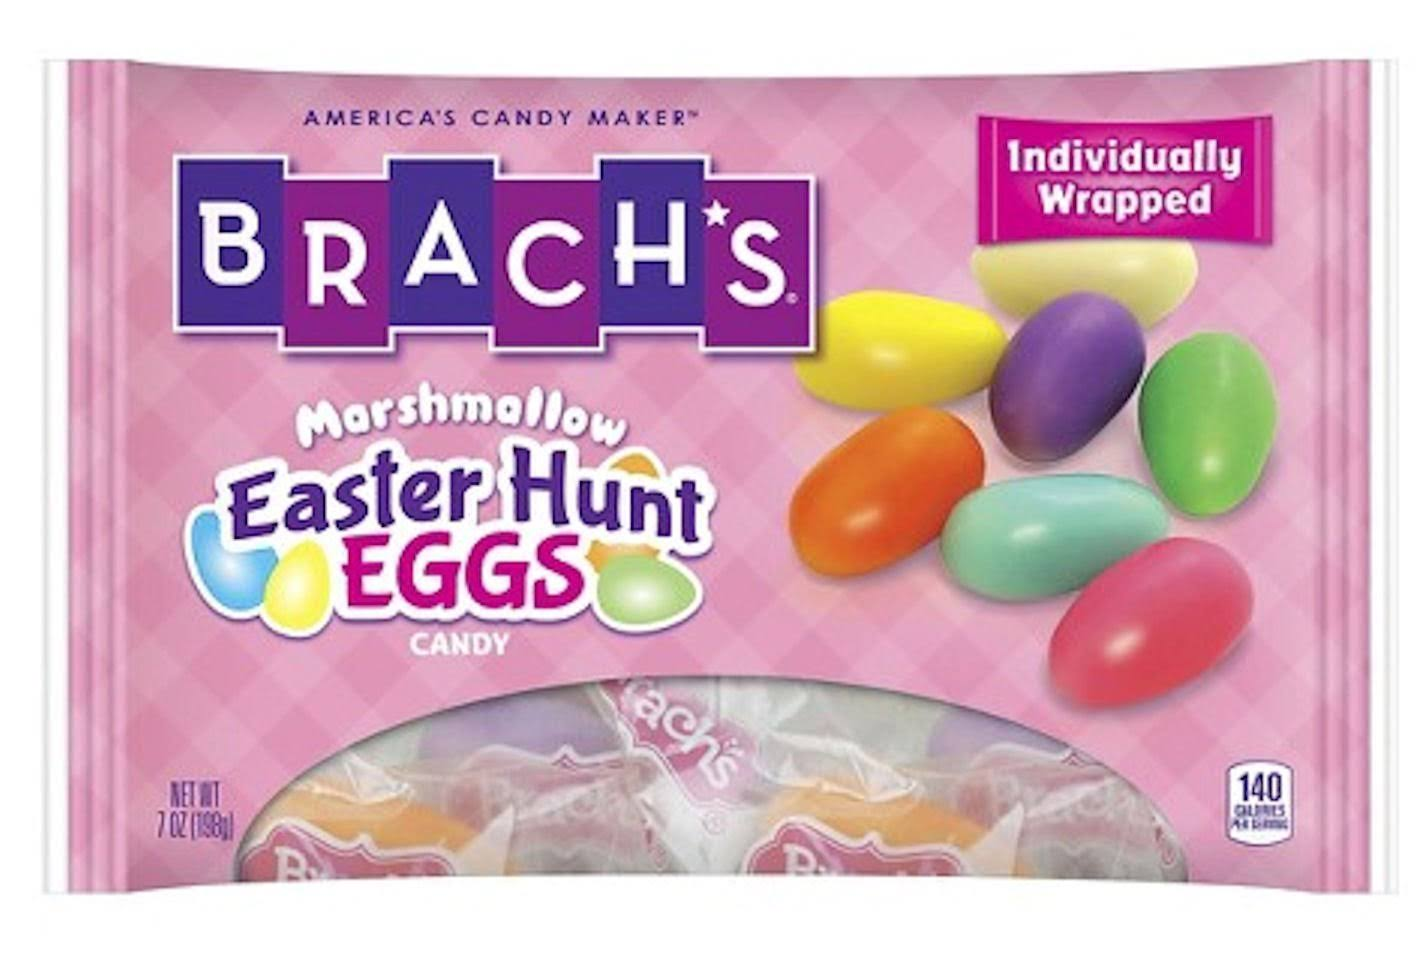 Brachs Easter Hunt Eggs Marshmallow Candy